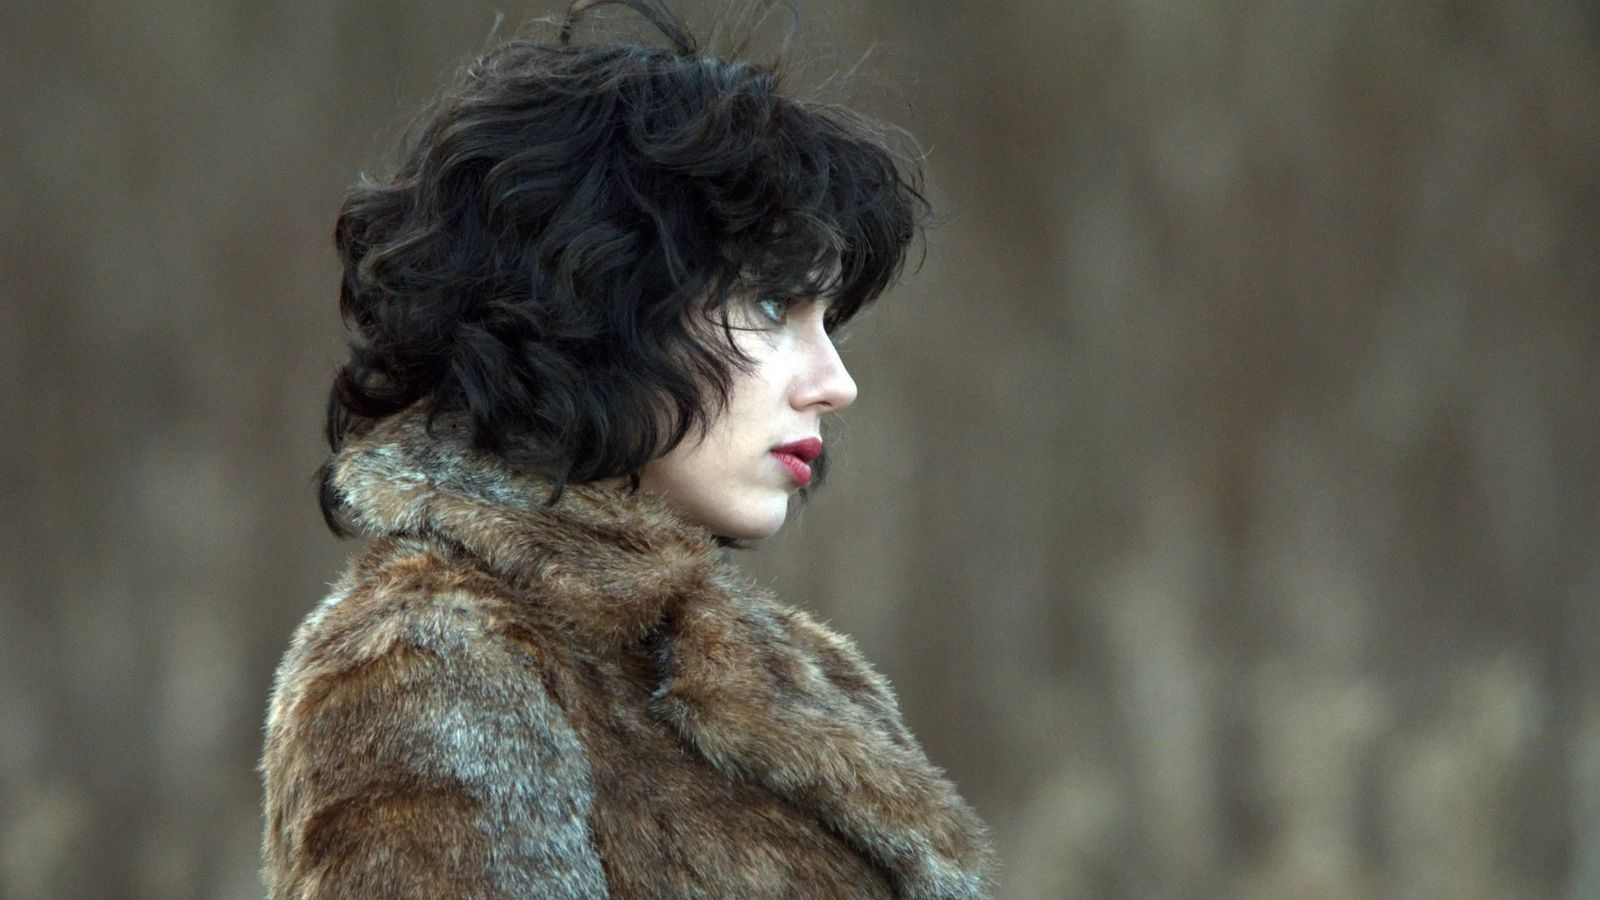 Scarlett Johansson a la pel·lícula 'Under the skin'.